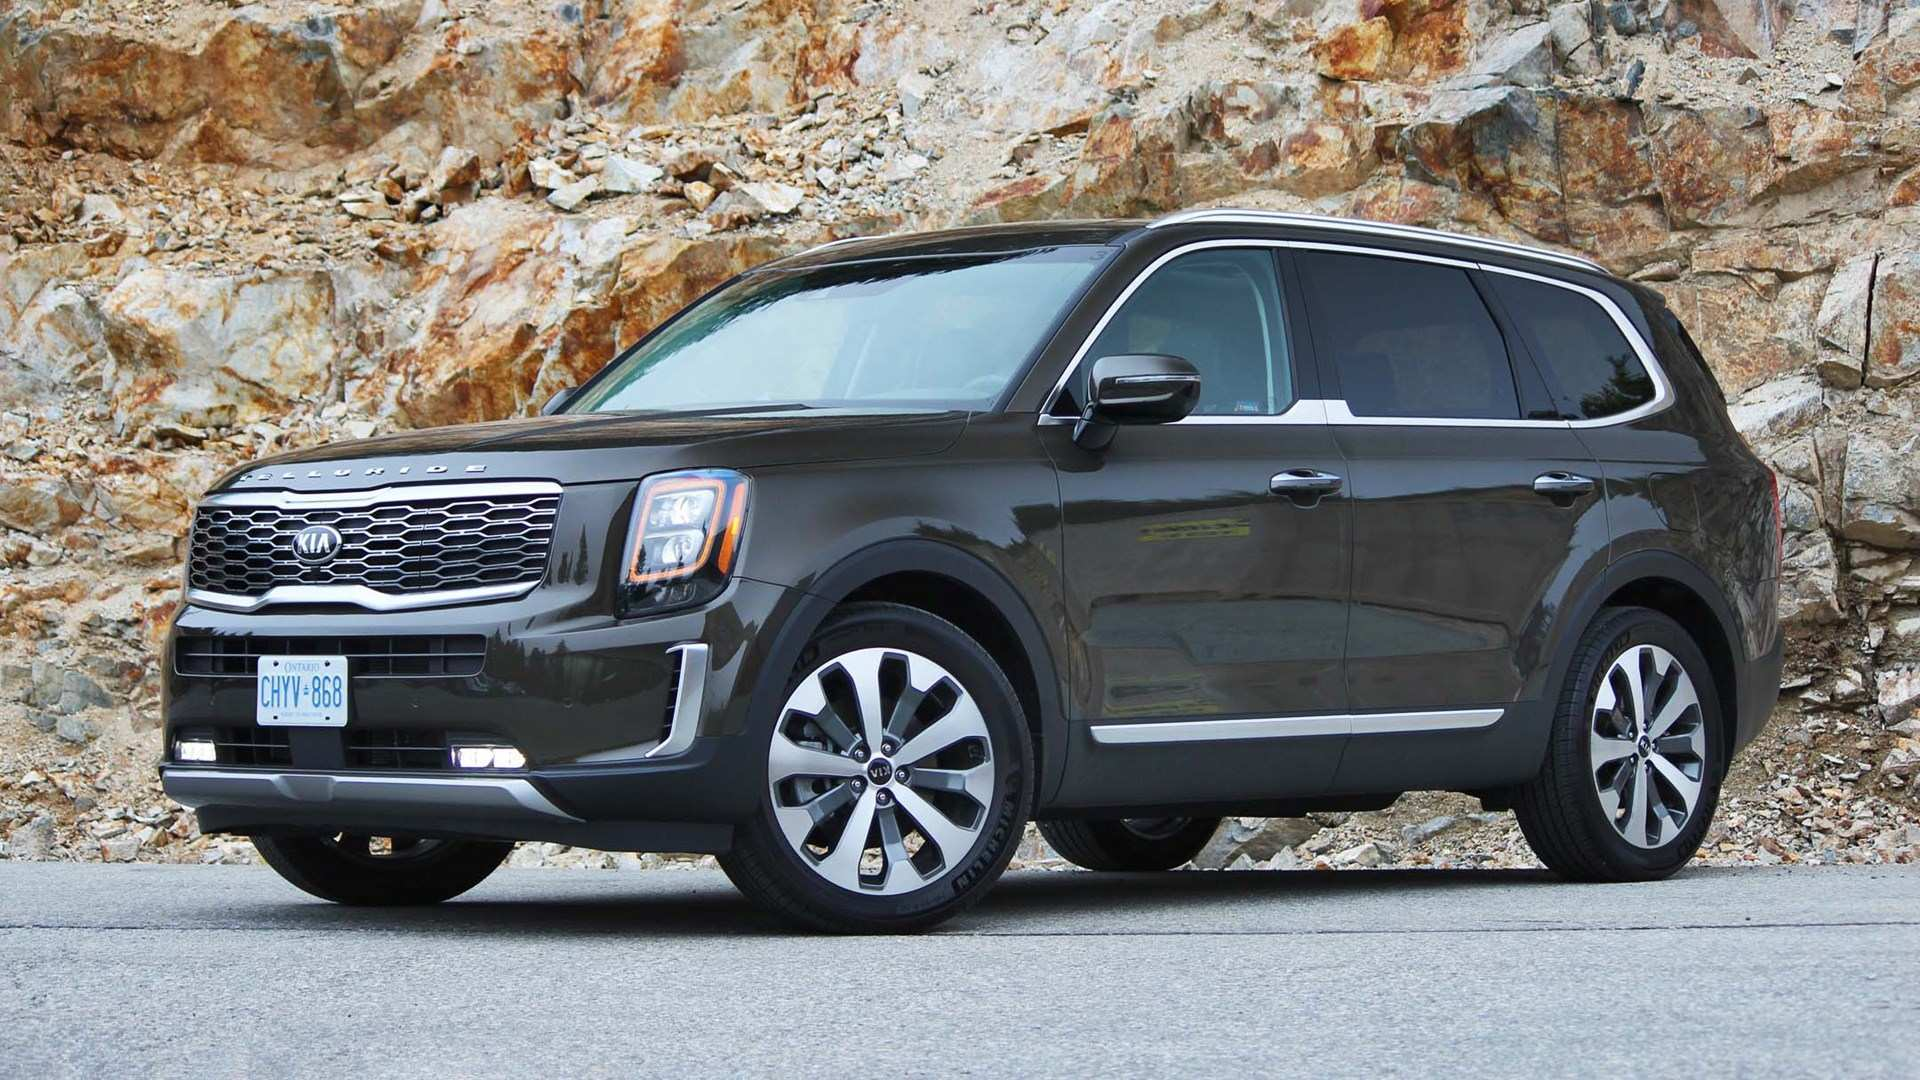 18 New Kia Telluride 2020 For Sale 2 Specs